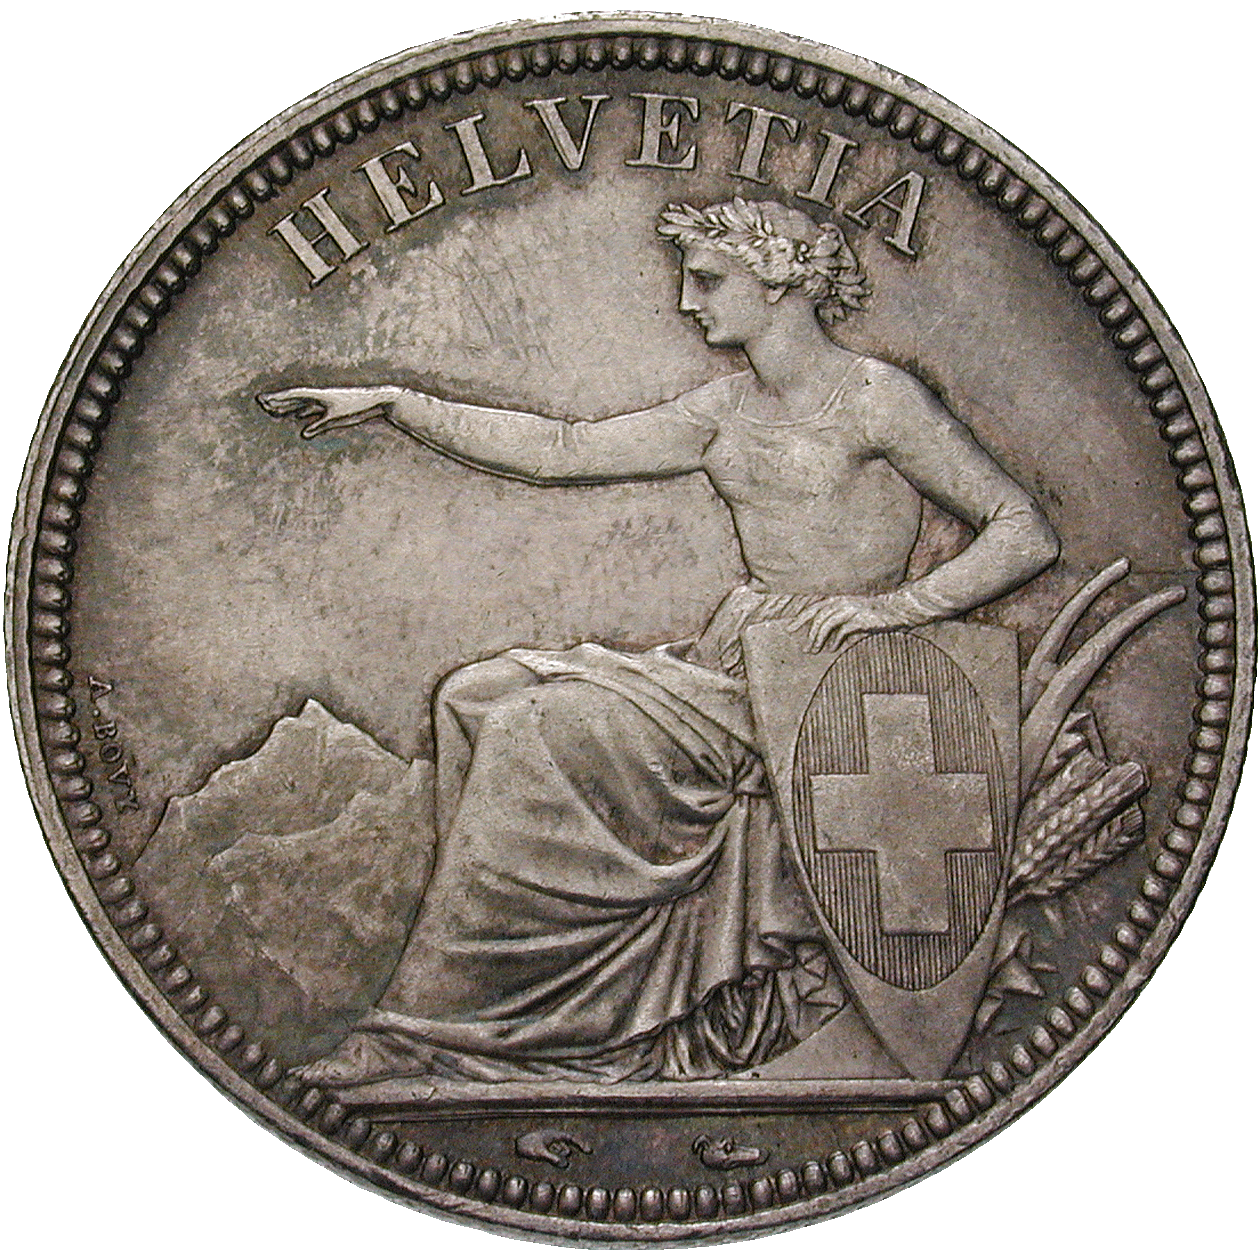 Swiss Confederation, 5 Francs 1850 (obverse)